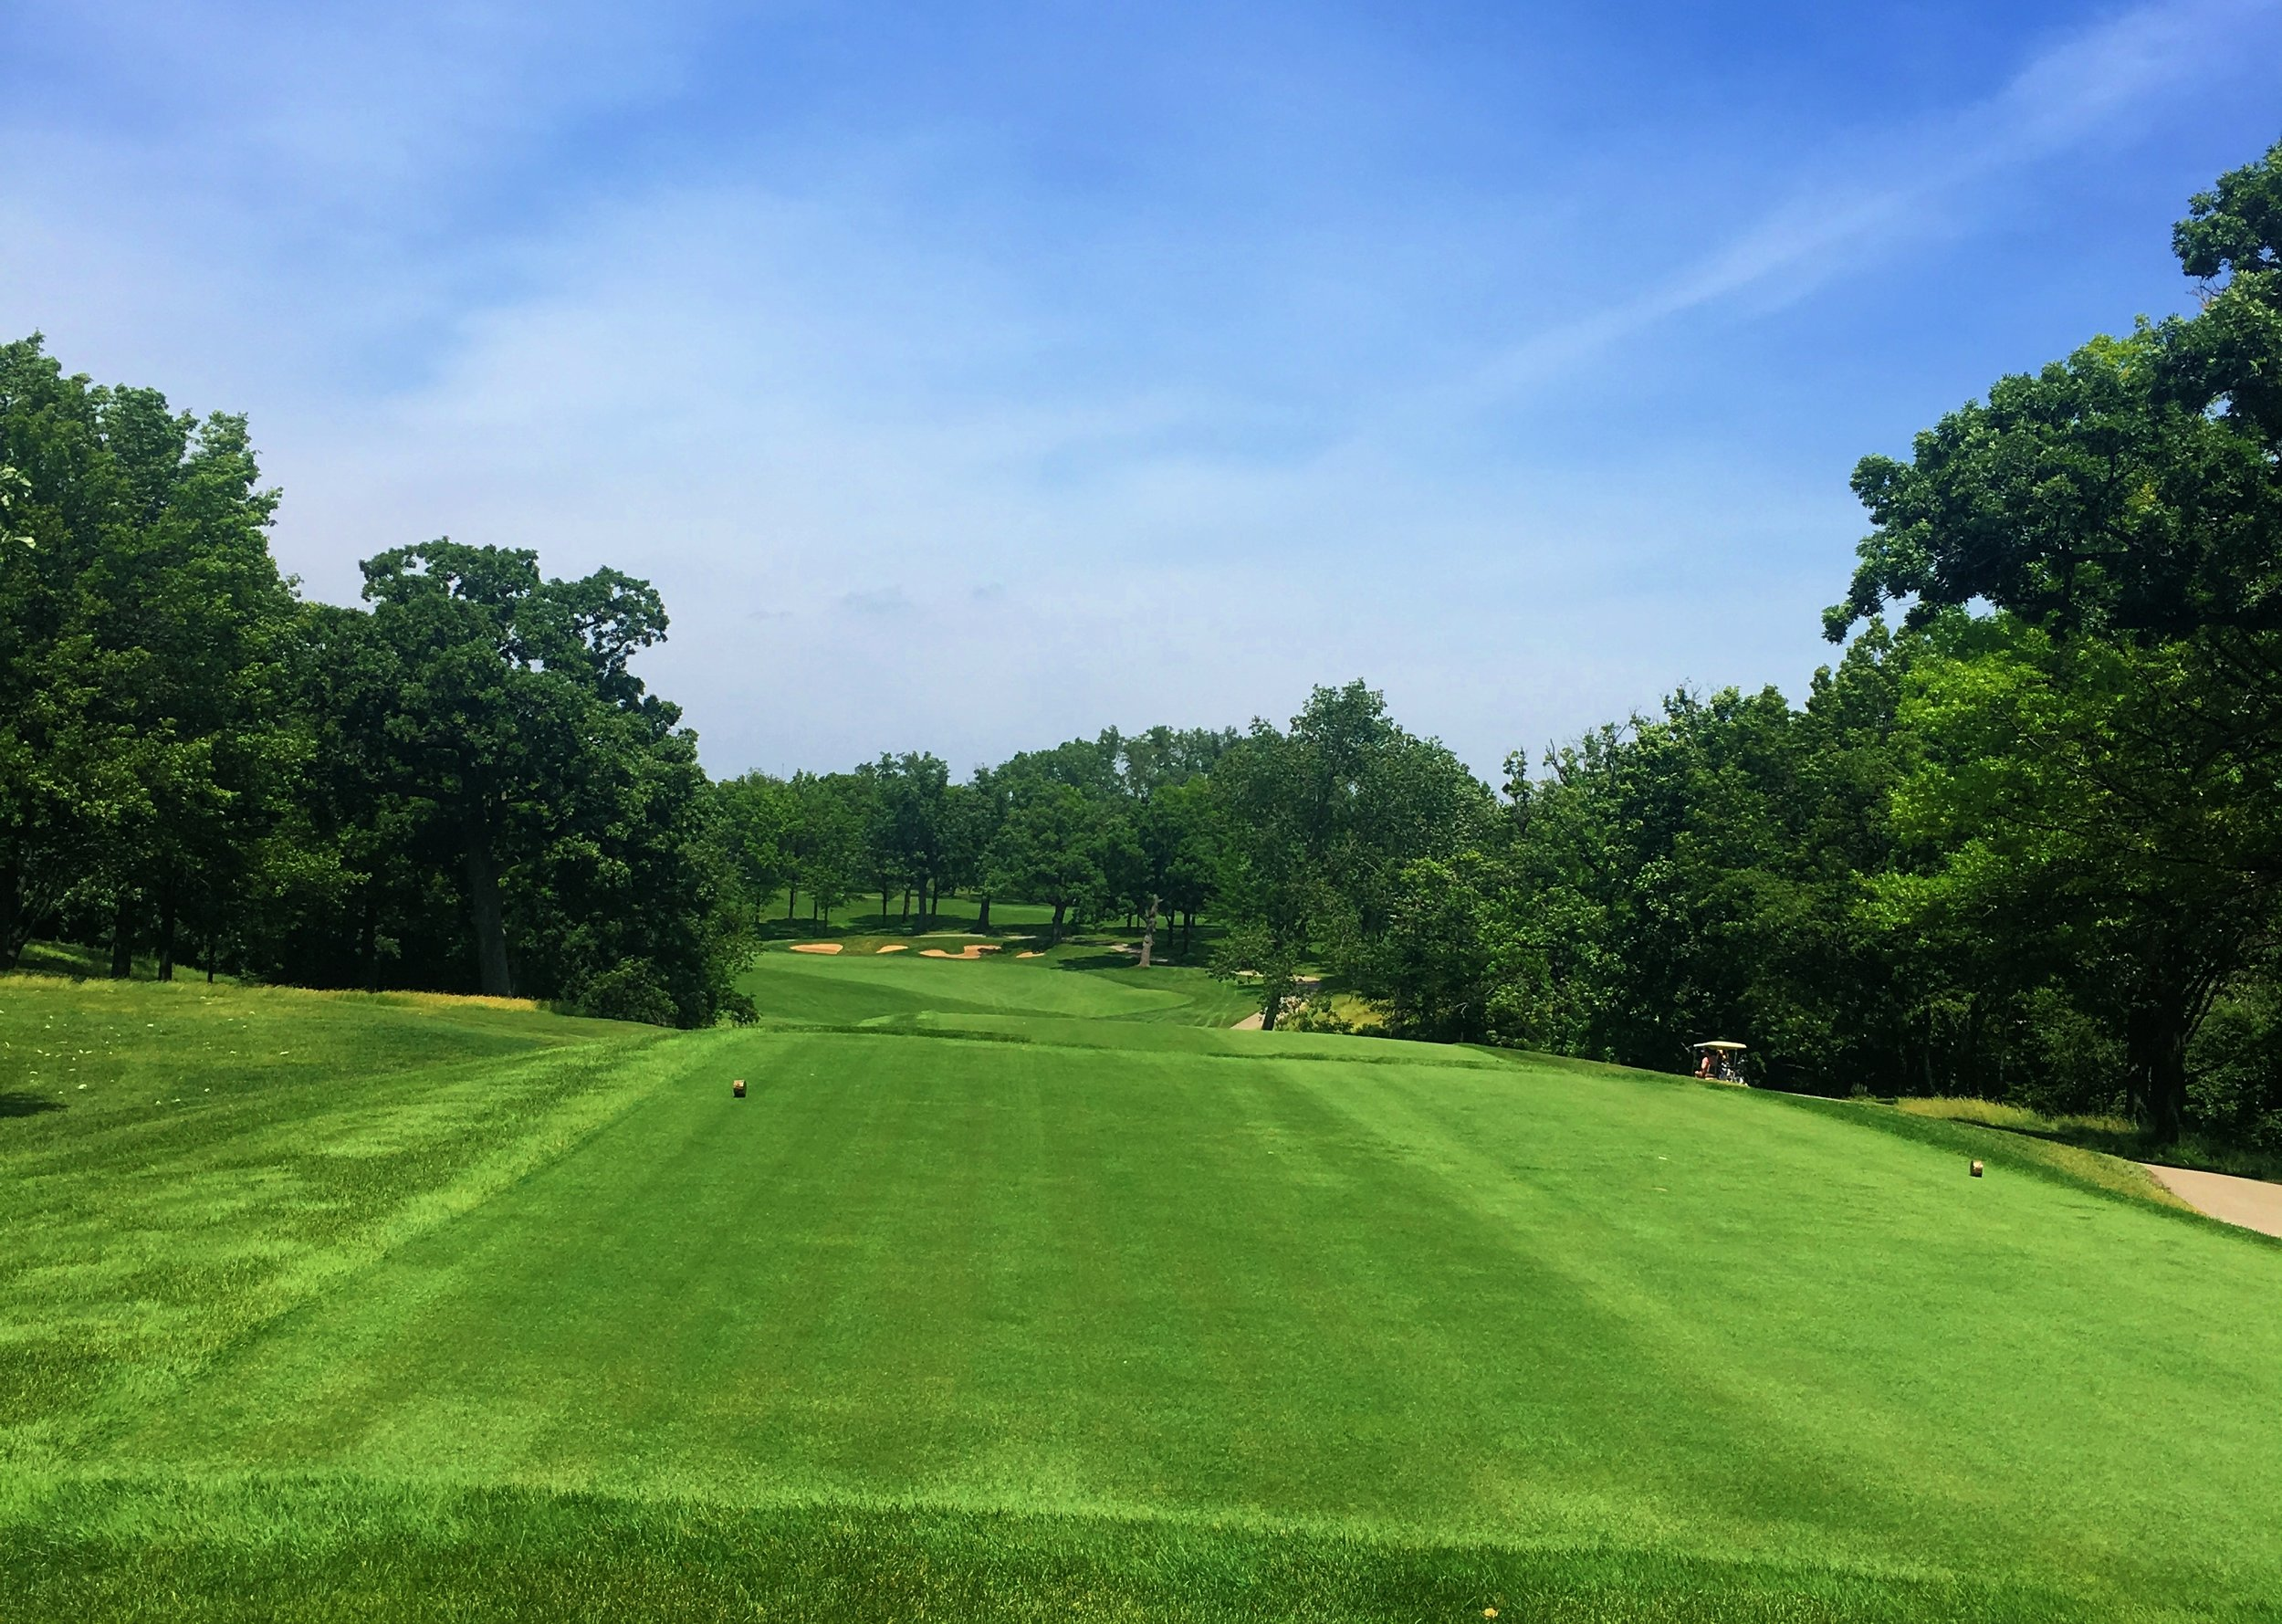 Day 2 - Our first game of golf was at the renowned Cog Hill Golf and Country Club. We played Course No 4, Dubsdread, where the PGA's BMW Championship was held from 2009 to 2011.